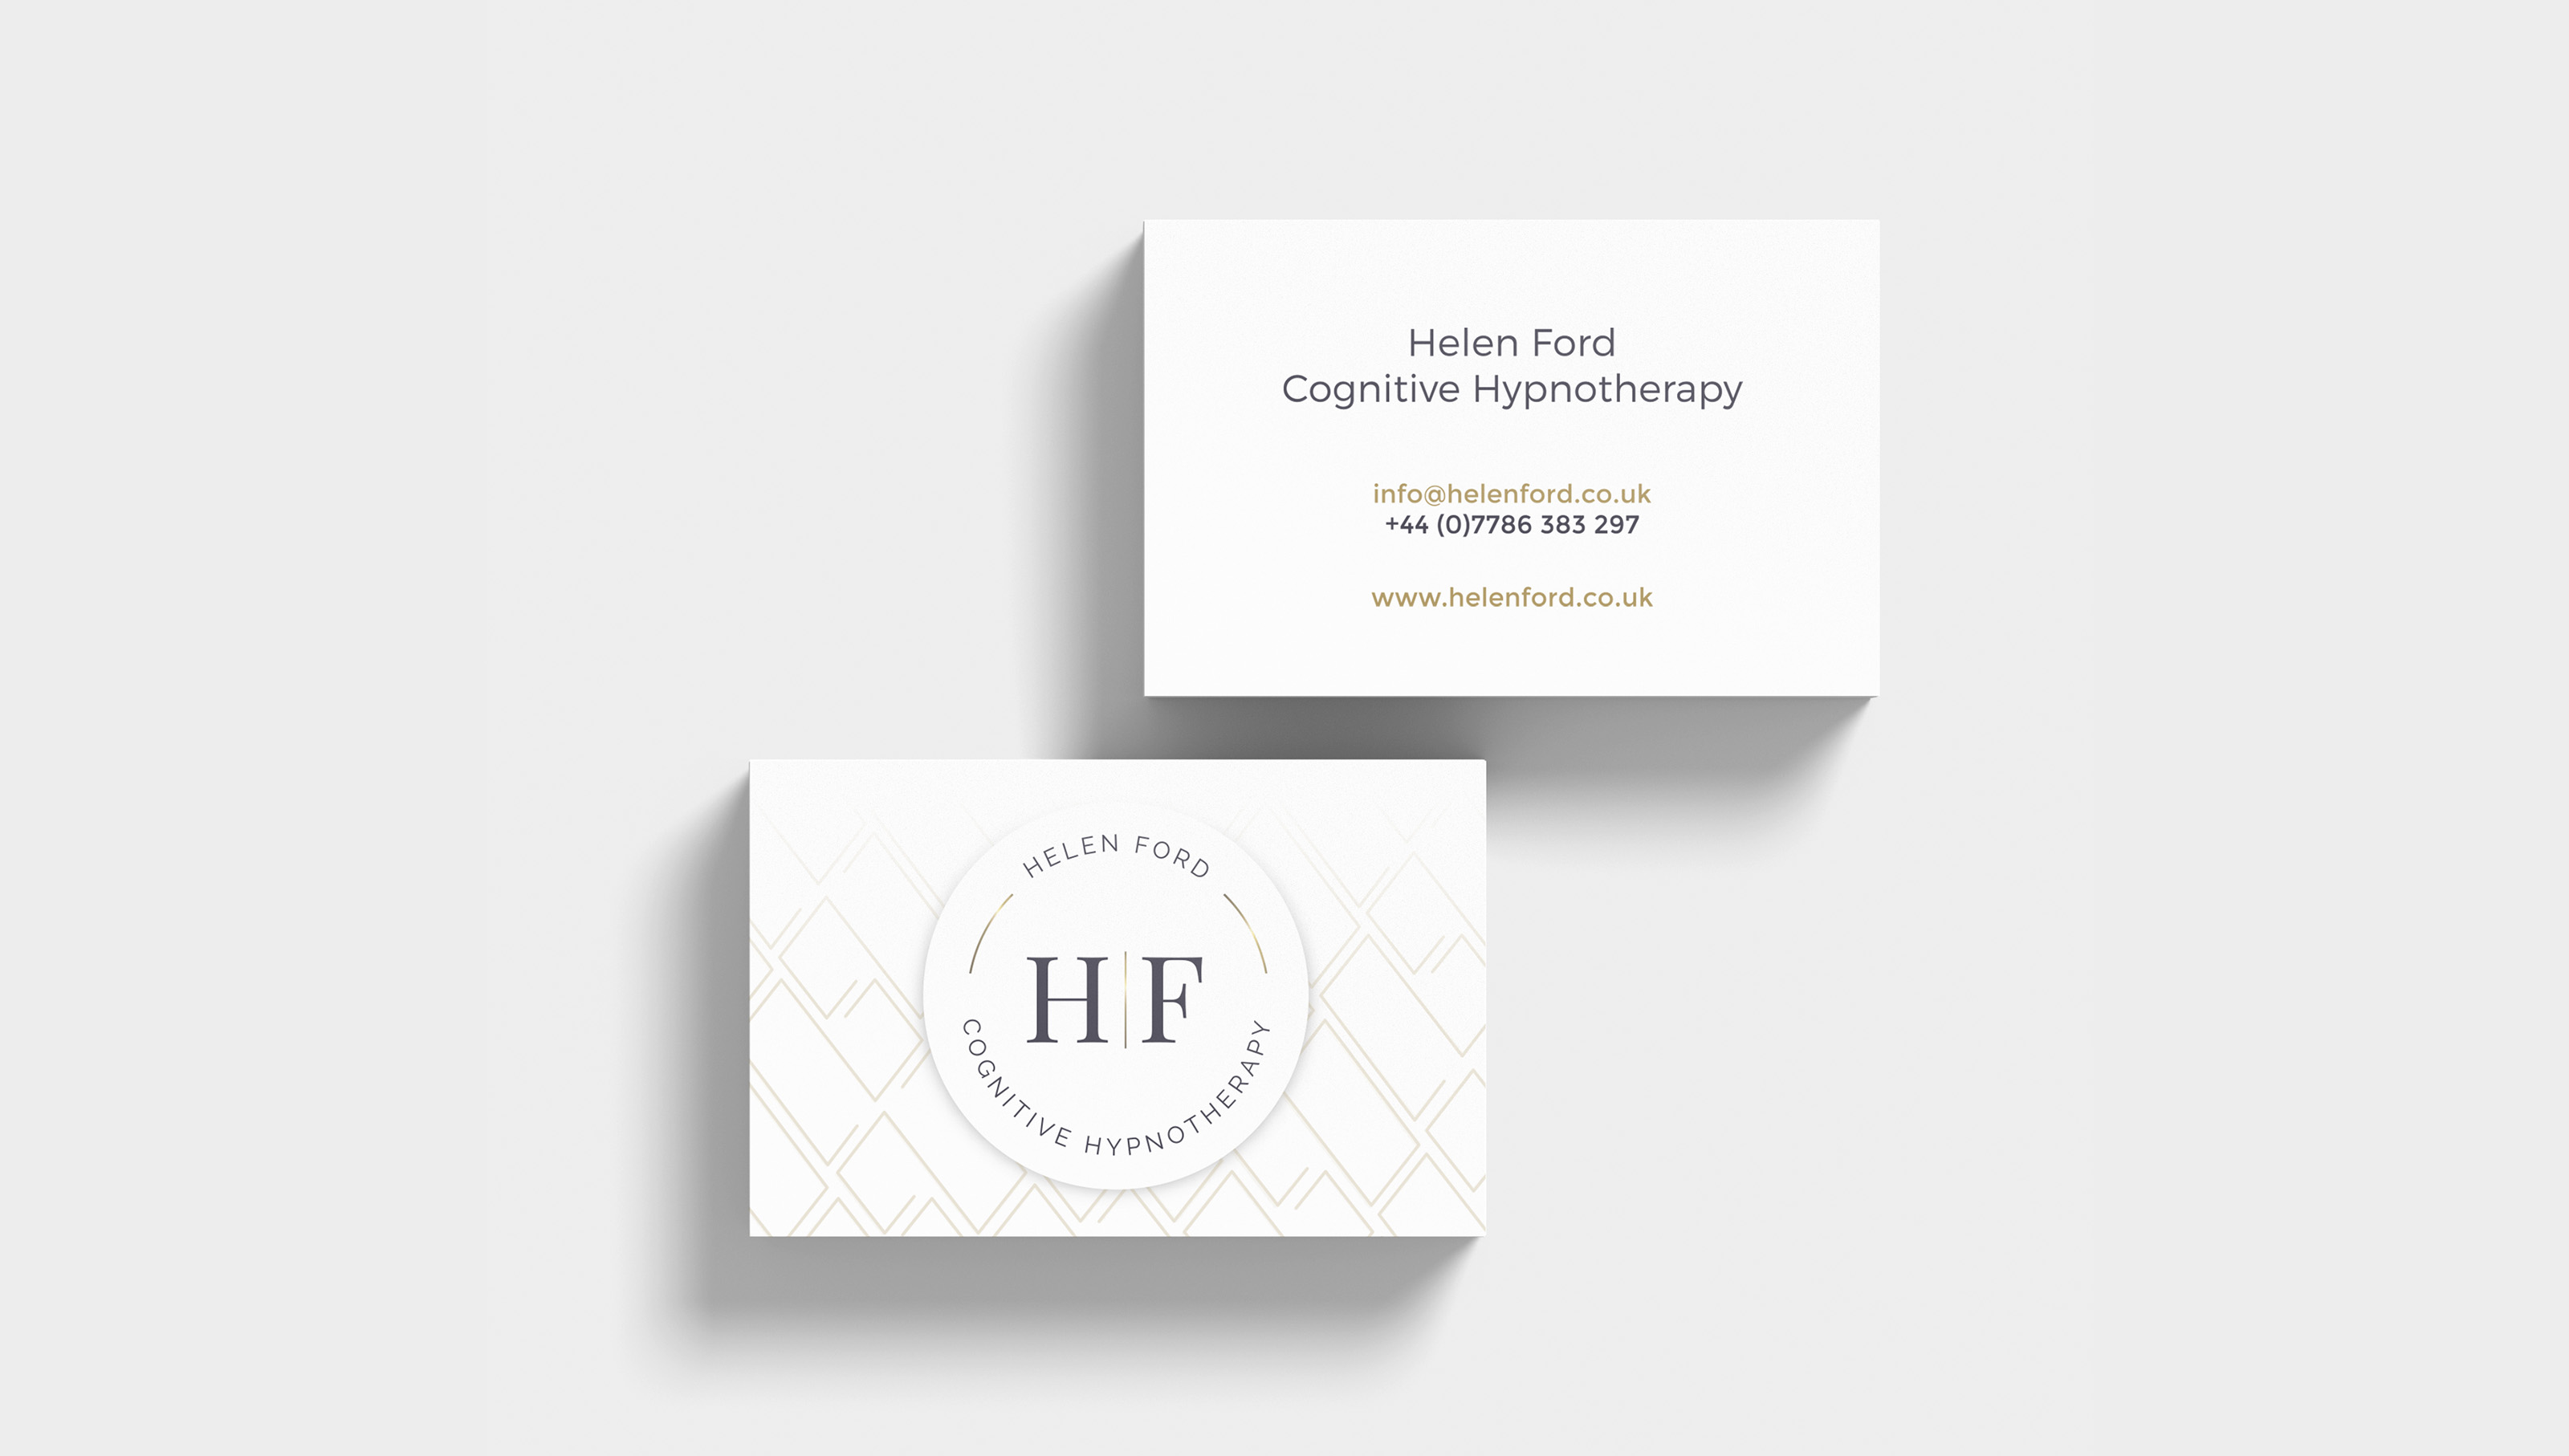 Cognitive Hypnotherapy Business Cards